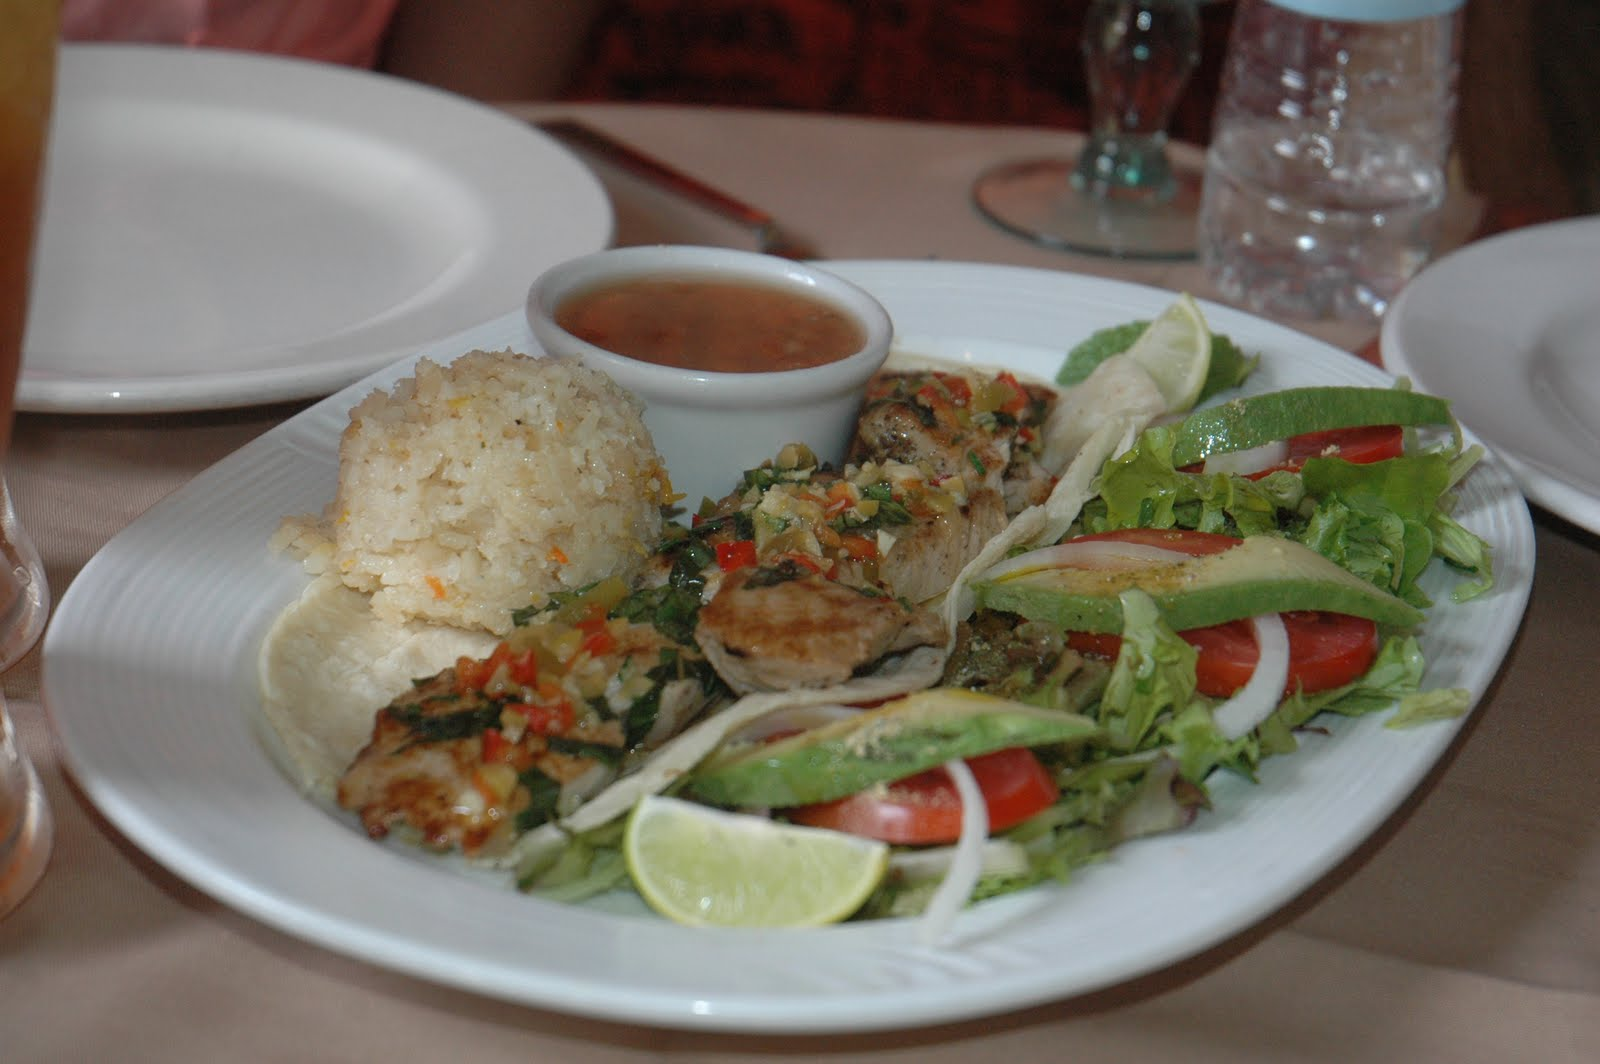 Fish tacos at the tequila sunrise restaurant in todos for Fish taco restaurant